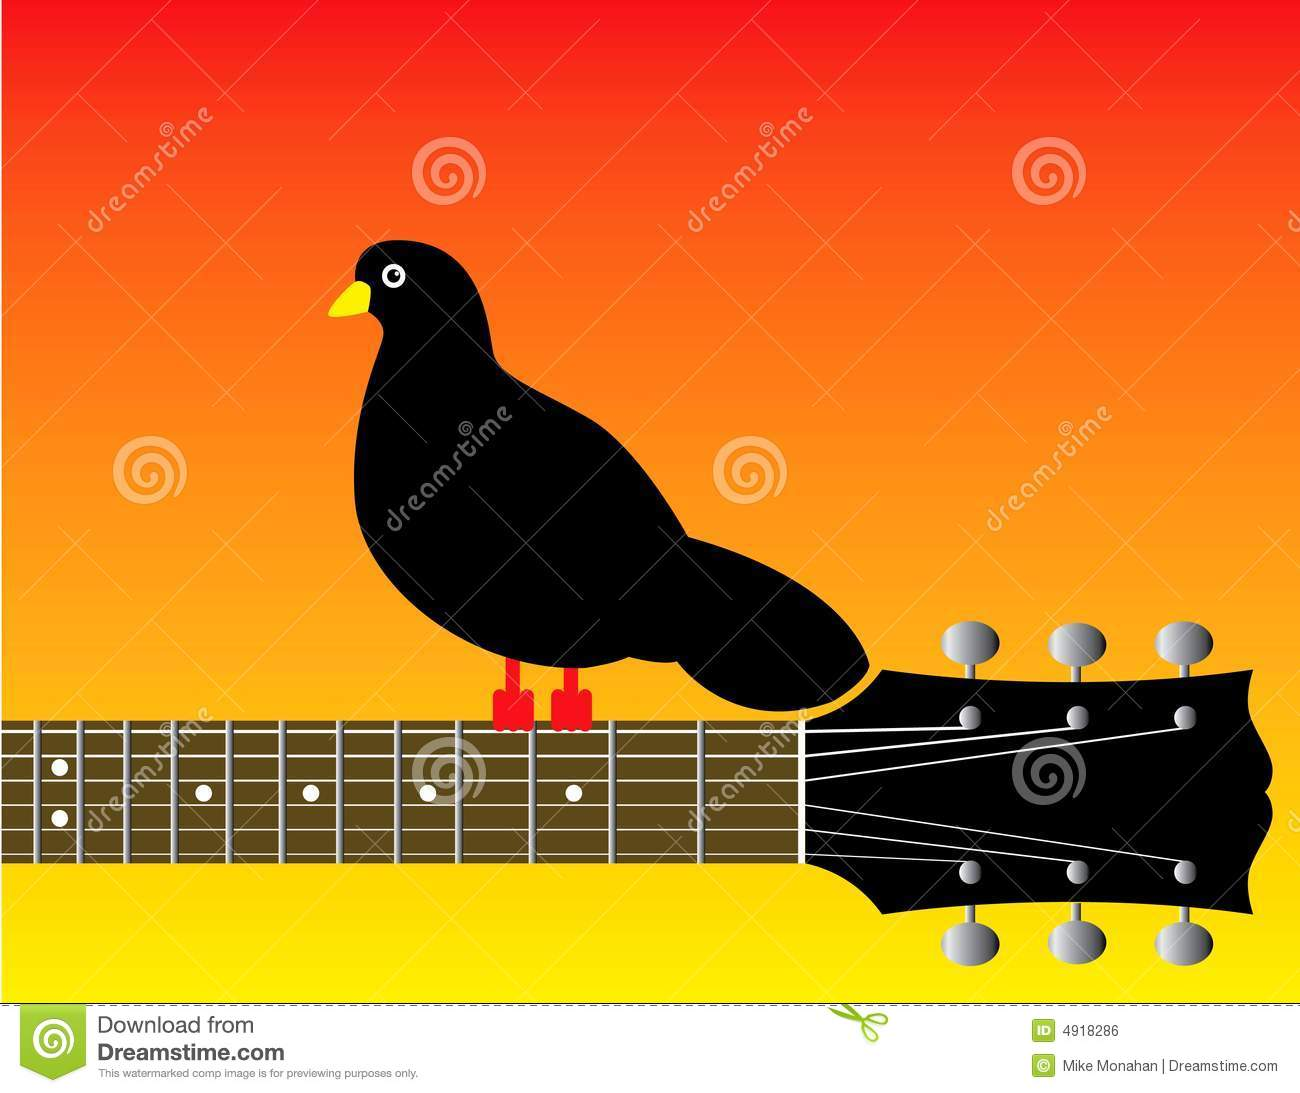 Tune Up Prices >> Graphic Of Bird On Guitar Neck Royalty Free Stock Image - Image: 4918286